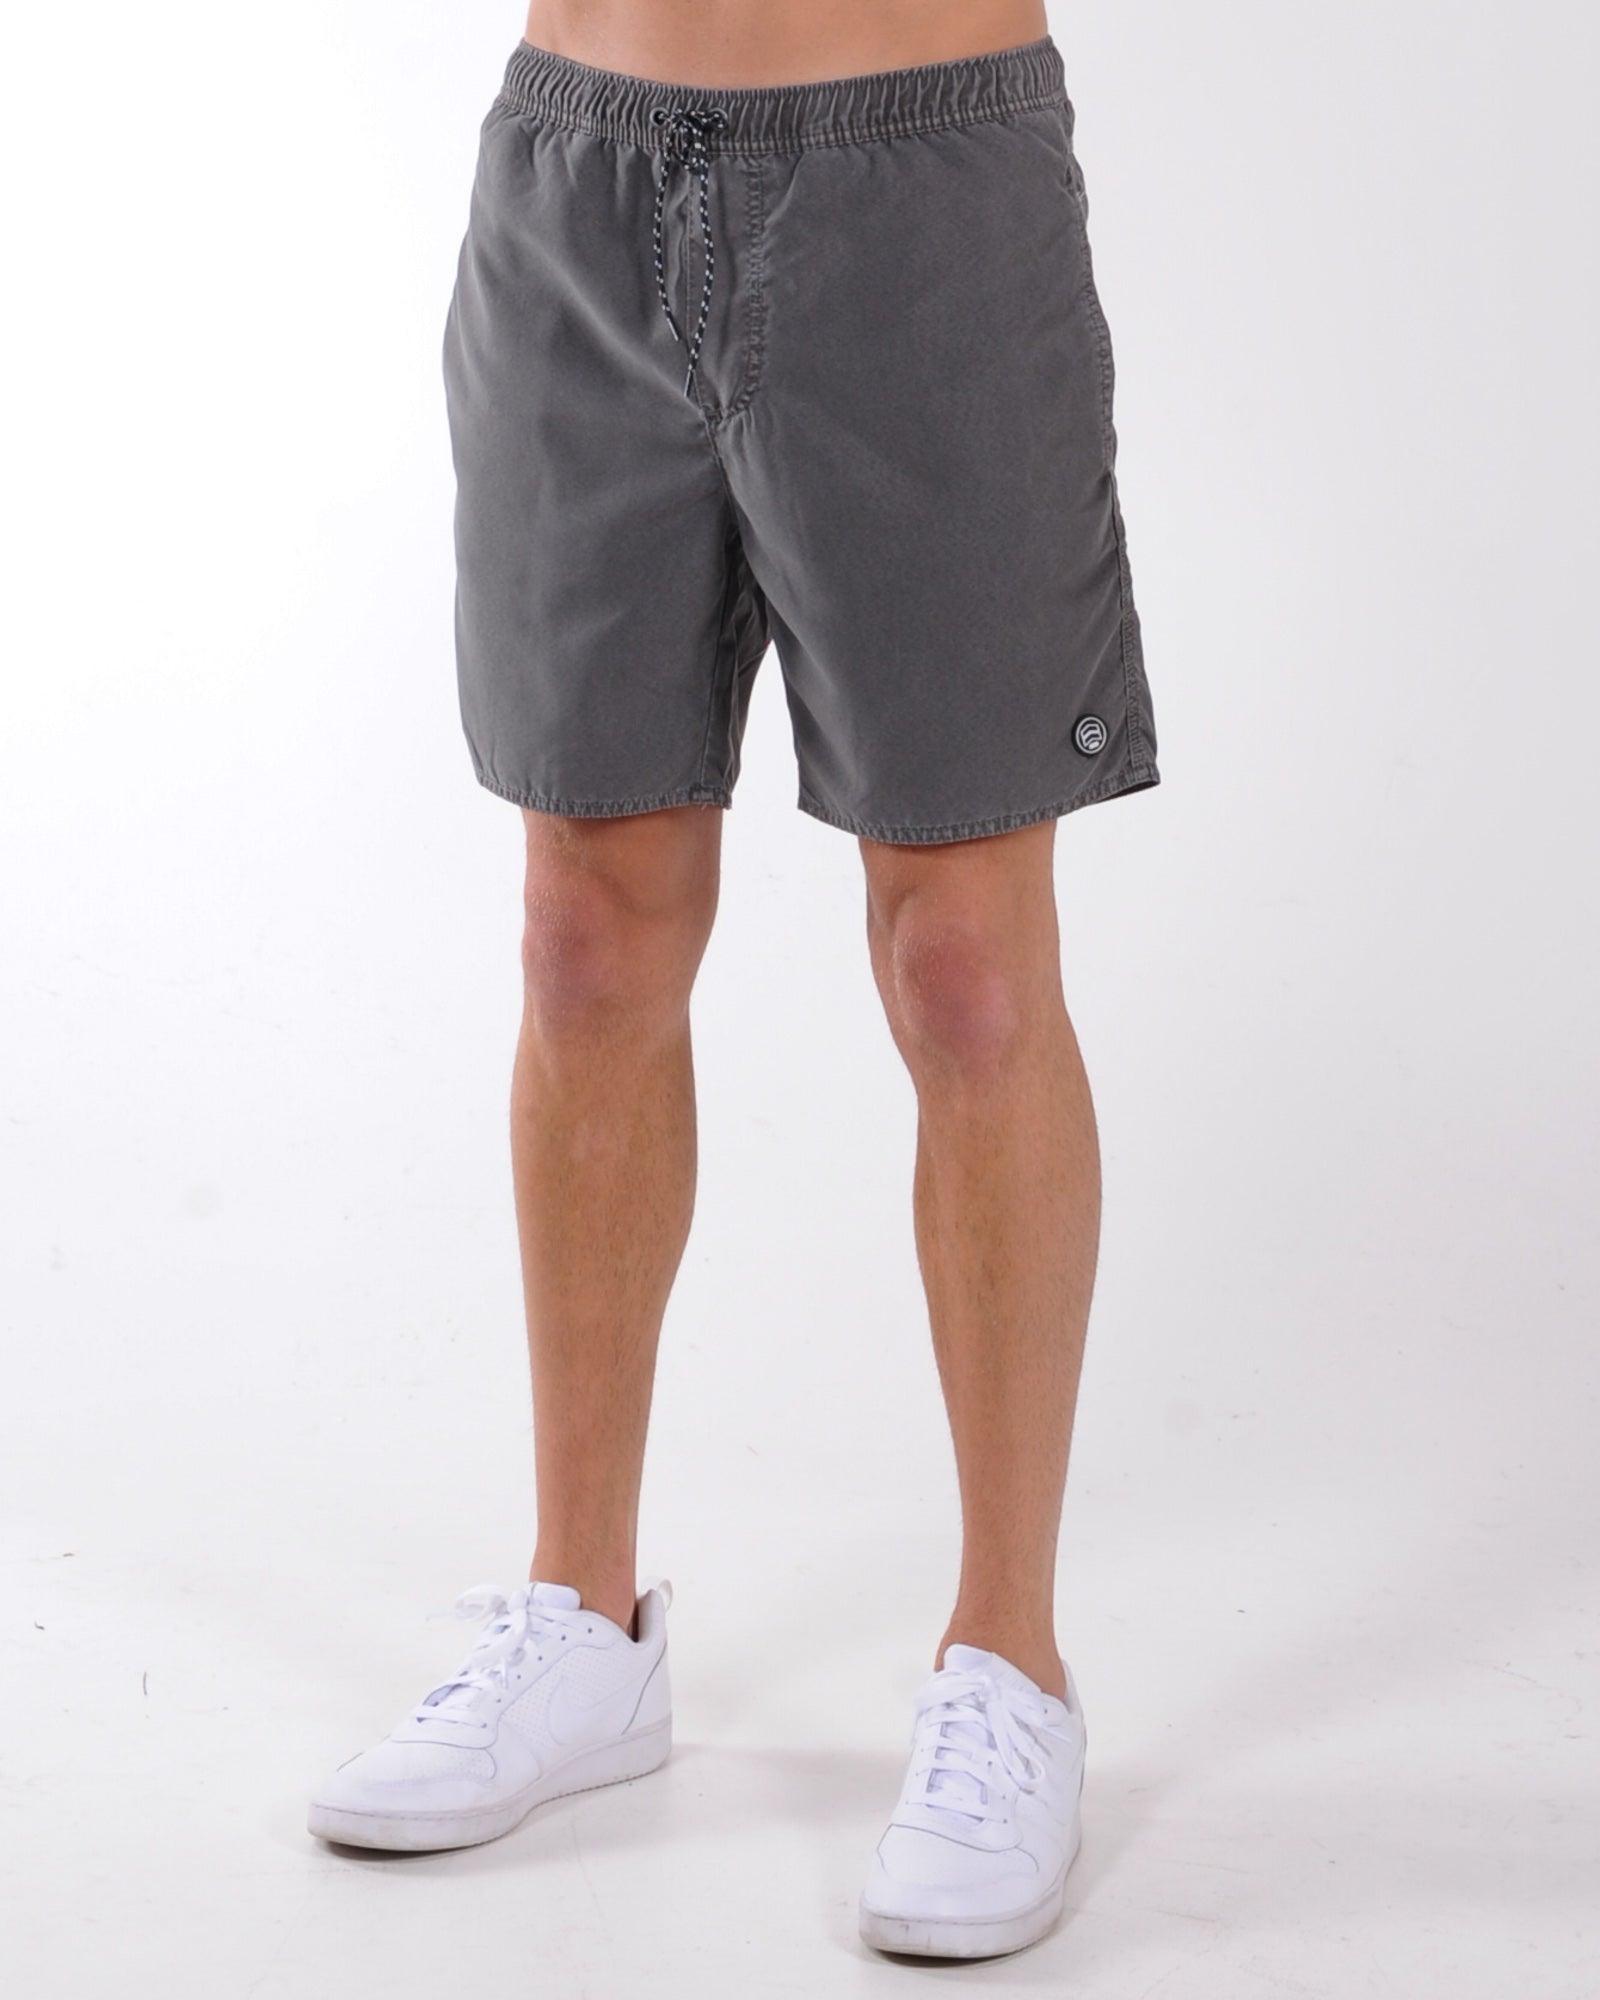 St Goliath Illusion Short - Washed Black